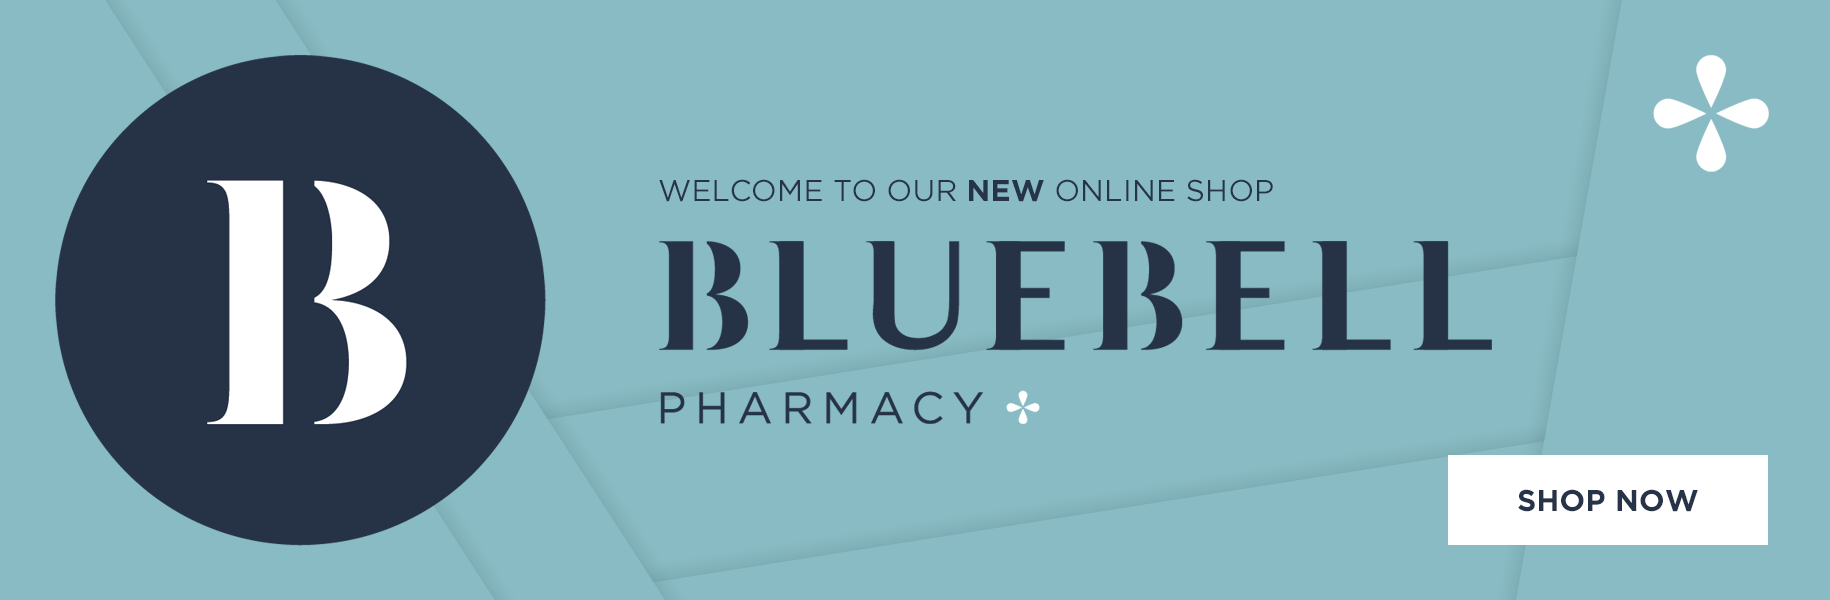 Welcome to the new Bluebell Pharmacy online shop